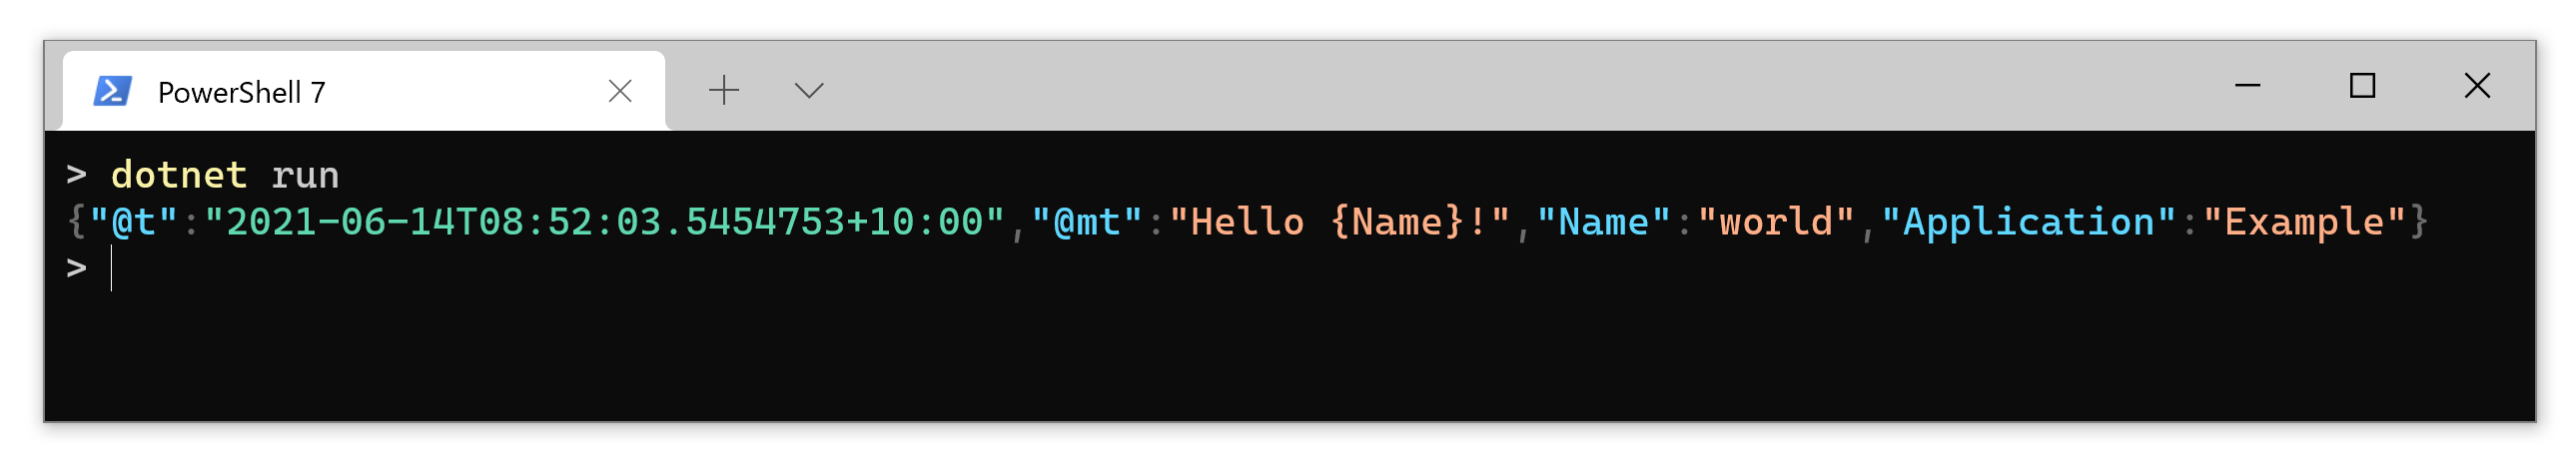 Output to Windows Terminal with syntax-highlighted JSON